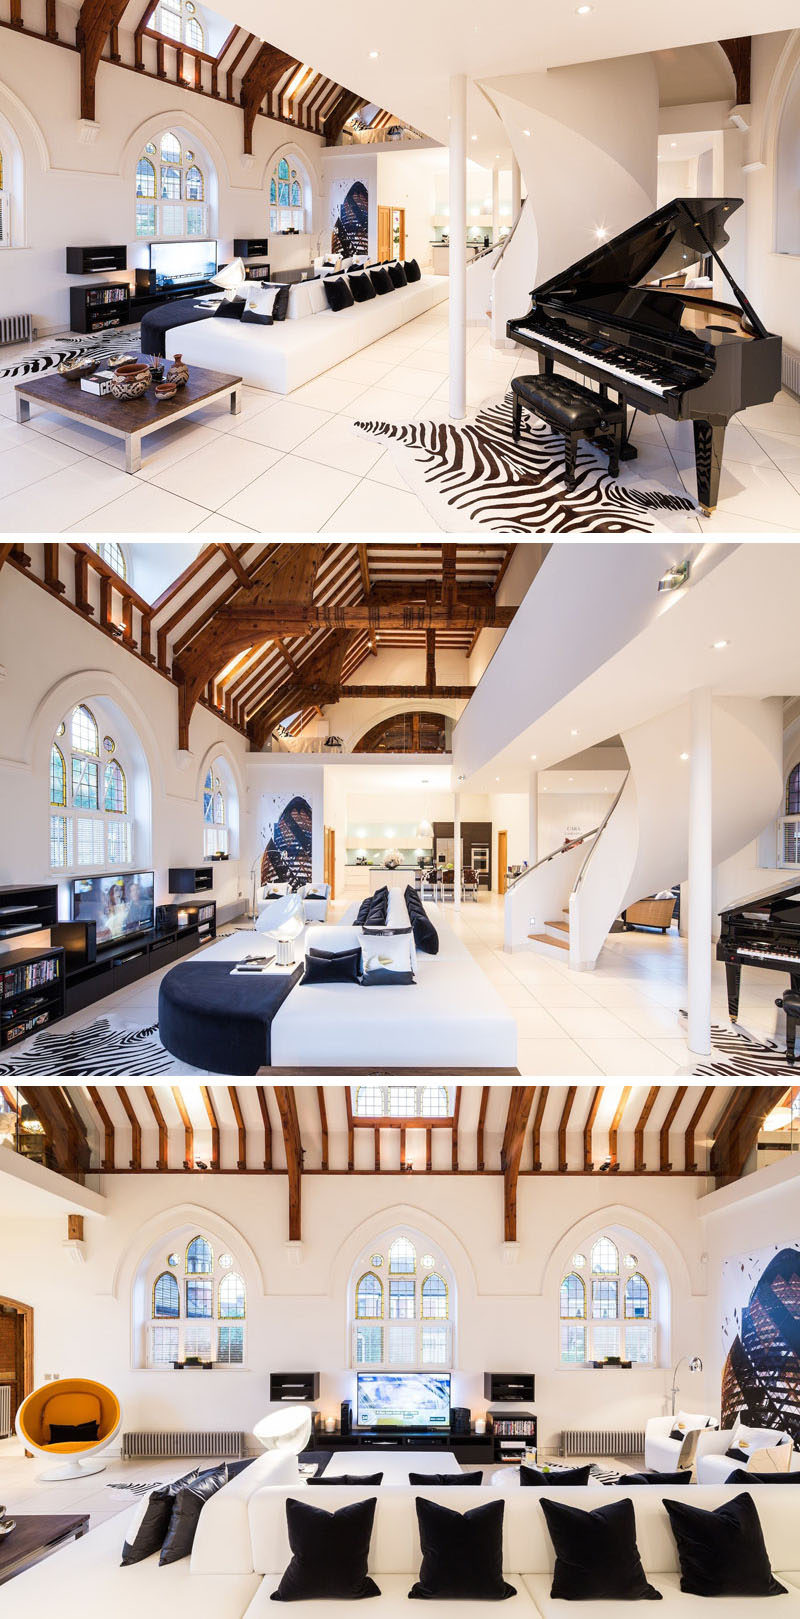 The interior of this renovated church has retained original features like the beamed high ceiling and stained glass windows, and combined them with contemporary furnishings and bright white walls and flooring. #RenovatedChurch #ChurchConversion #ModernInteriorDesign #InteriorDesign #Windows